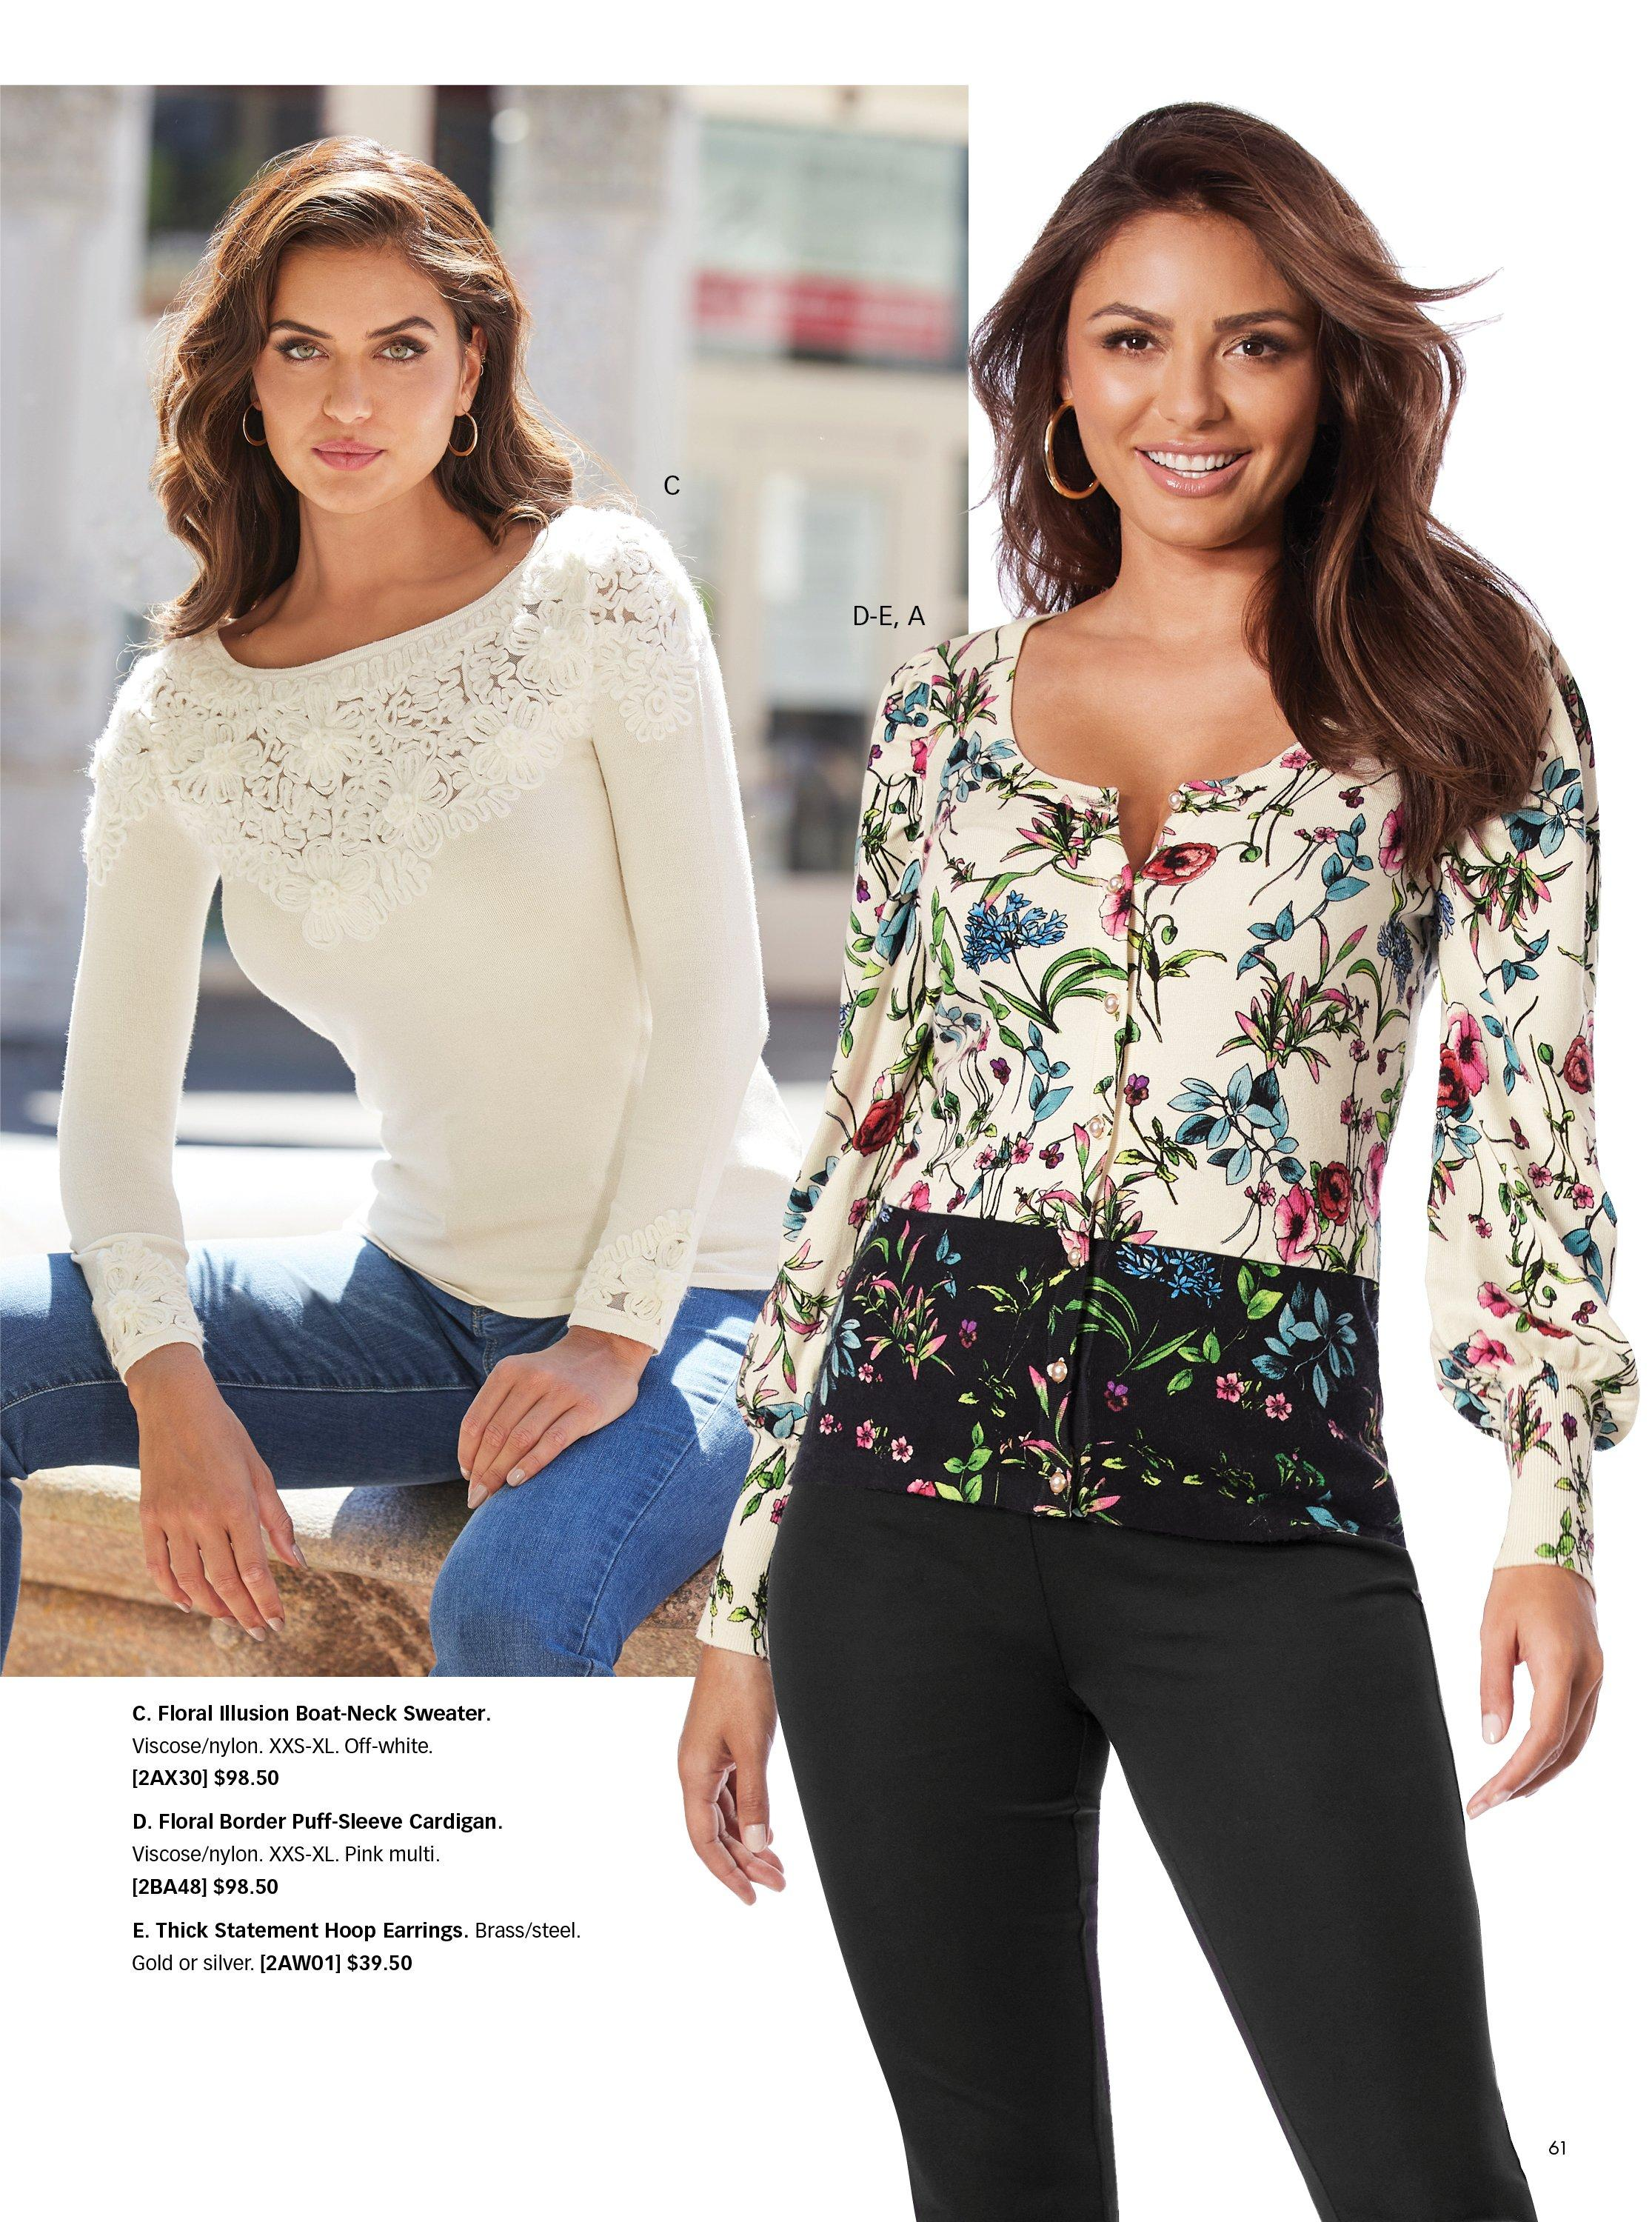 left model wearing a white lace long-sleeve top and jeans. right model wearing a floral black and white cardigan and black jeans.